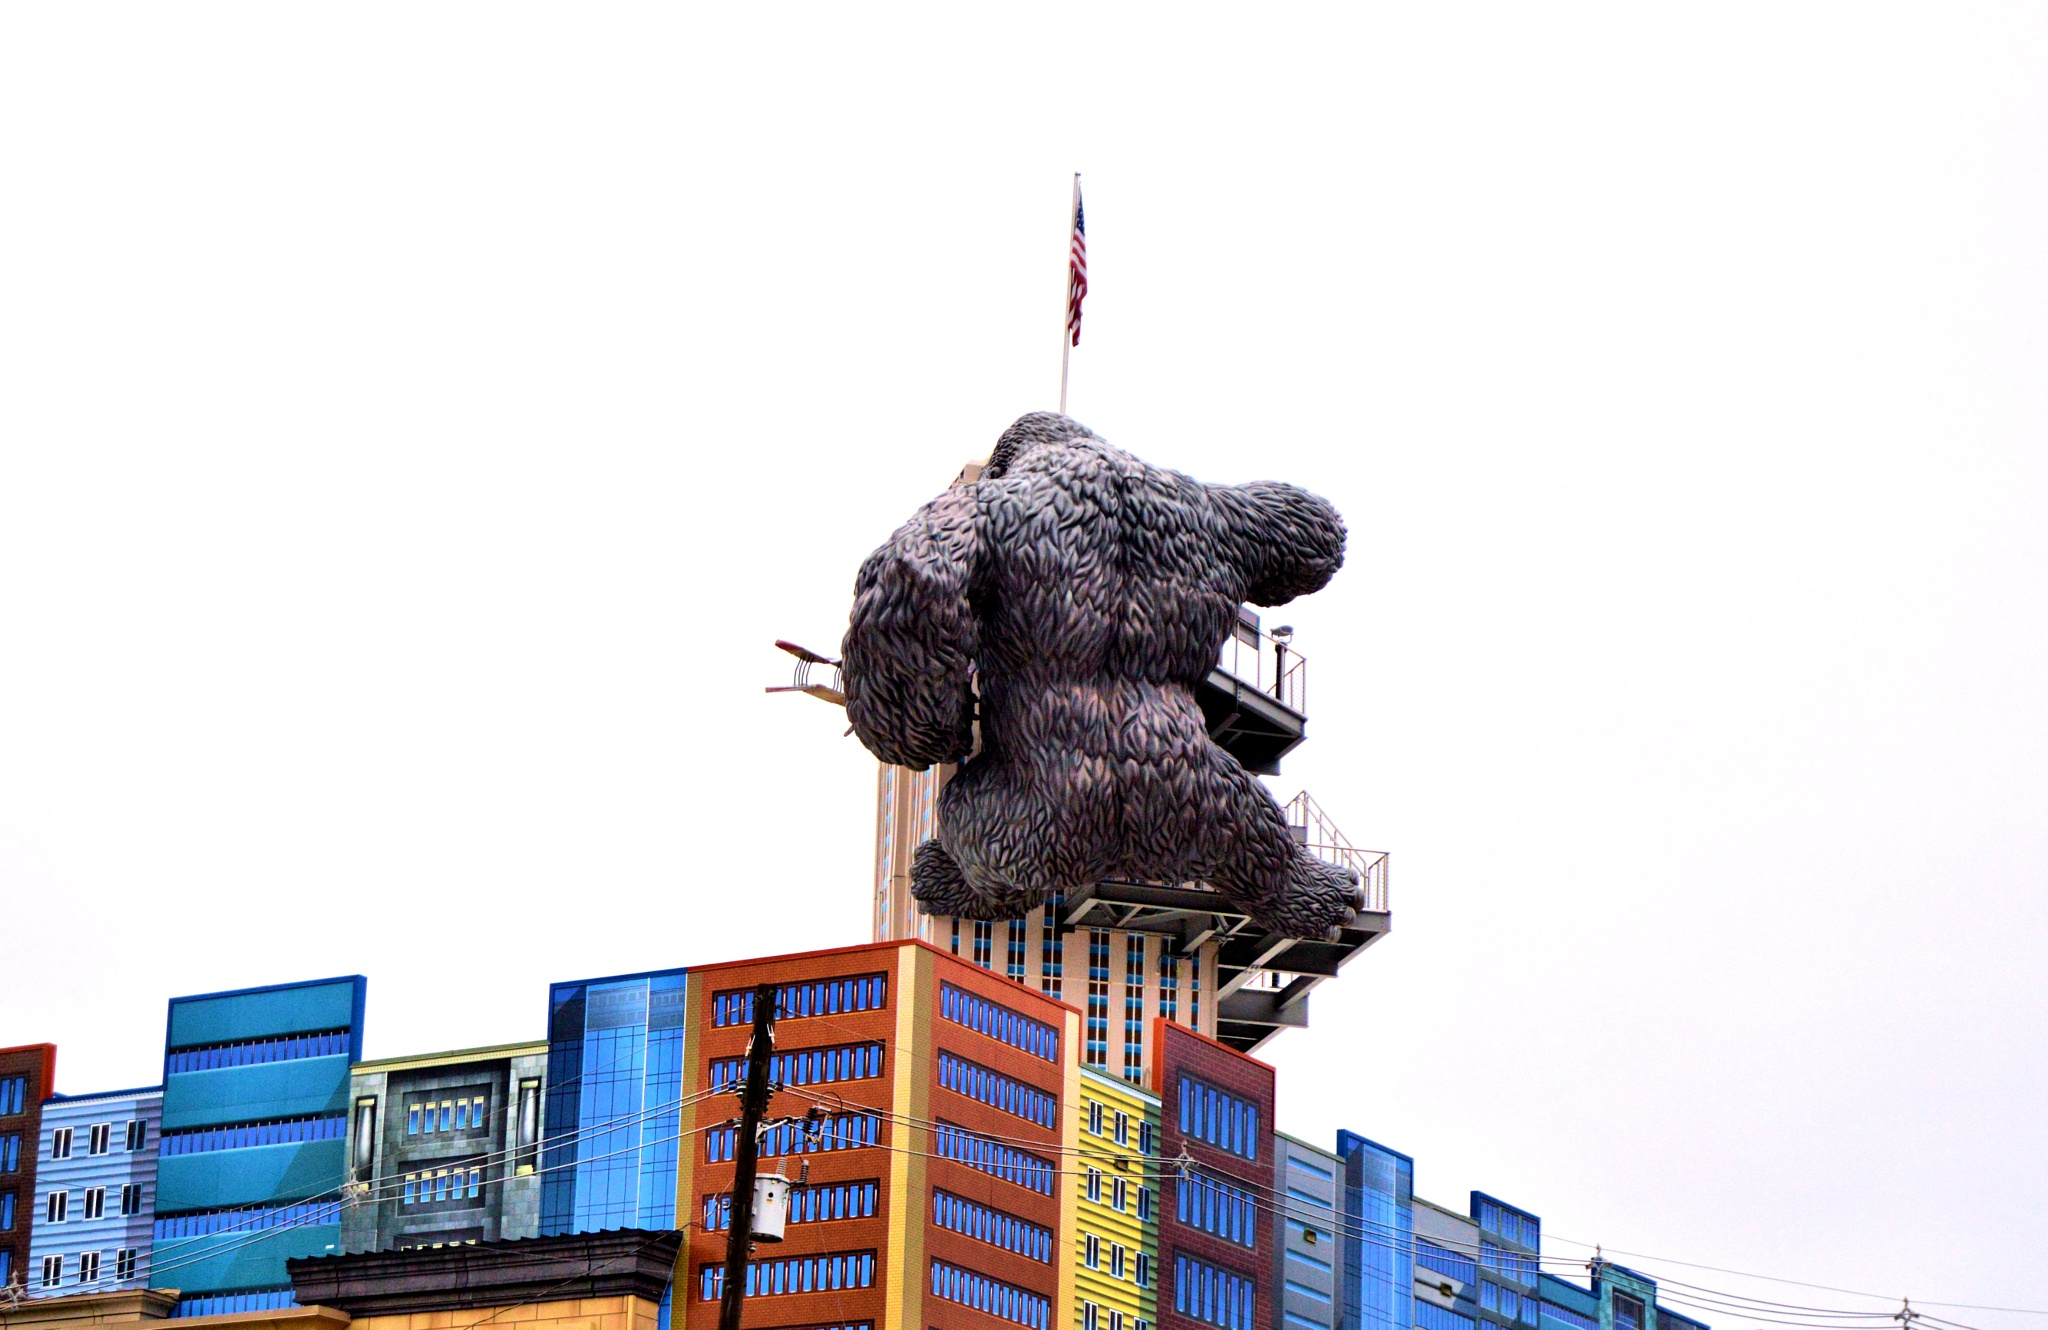 The Return of King Kong! by Jennifer Asher